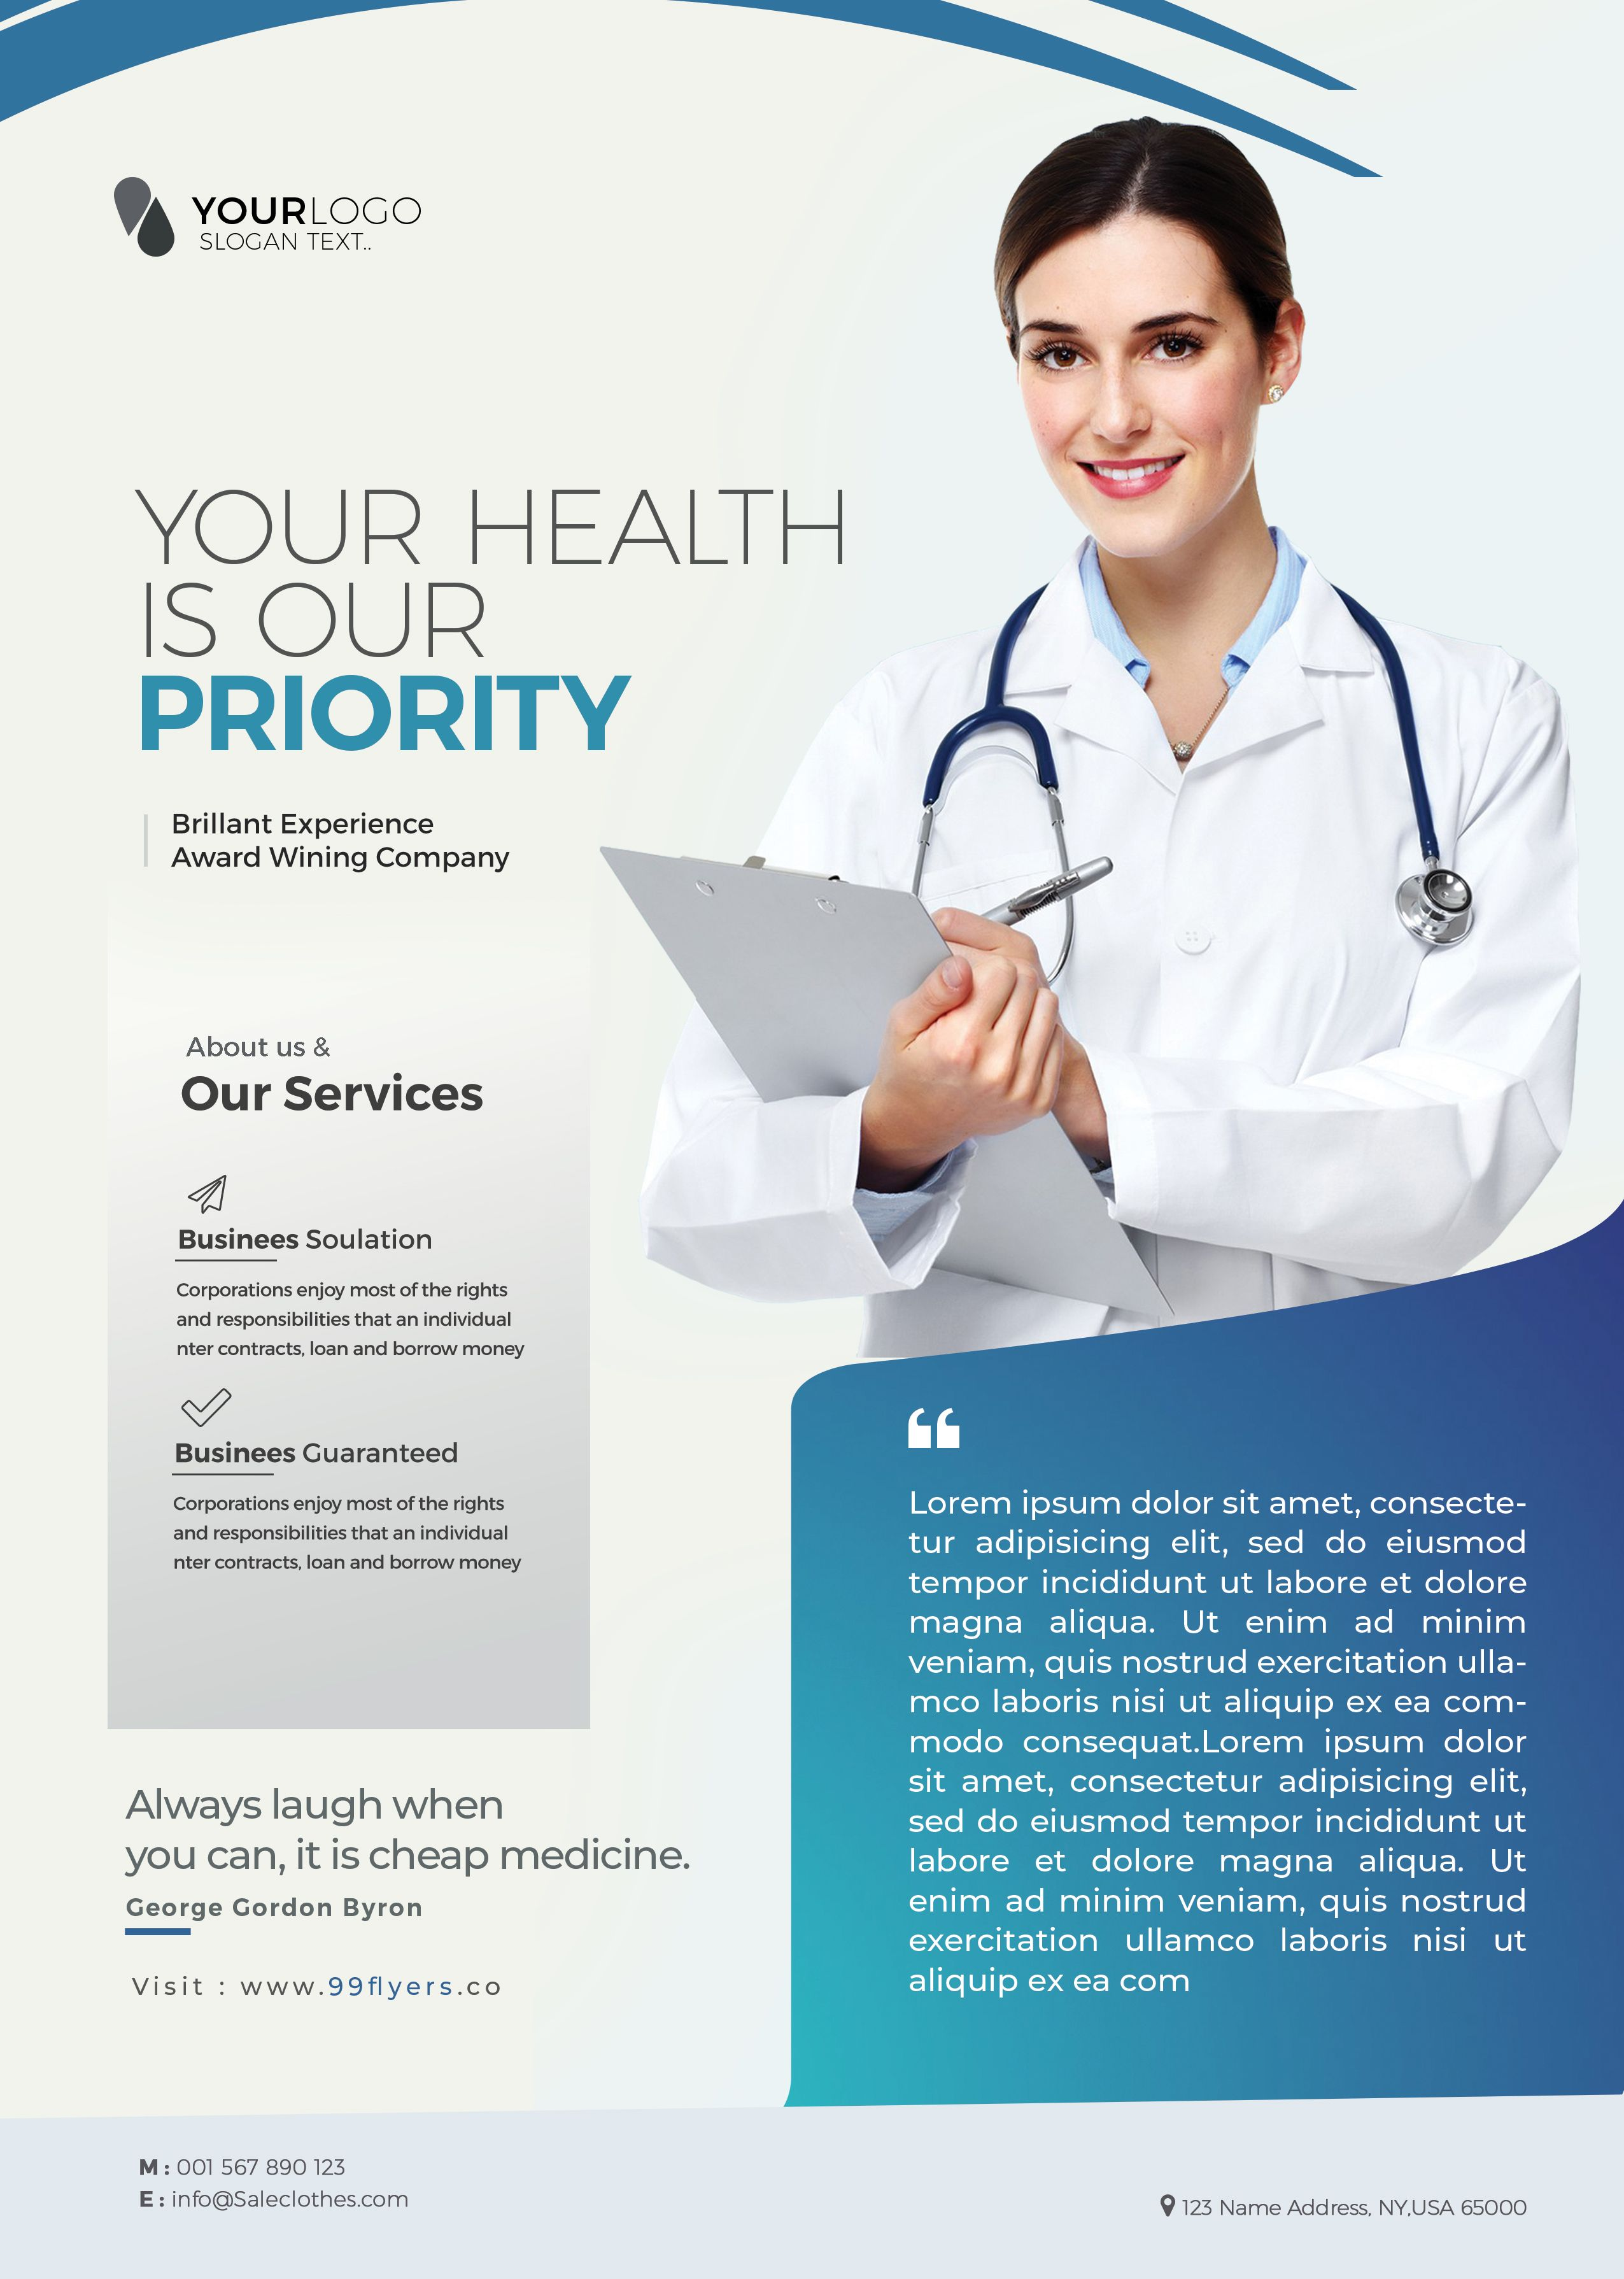 Medical Health Free PSD Flyer Template in 2020 Psd flyer